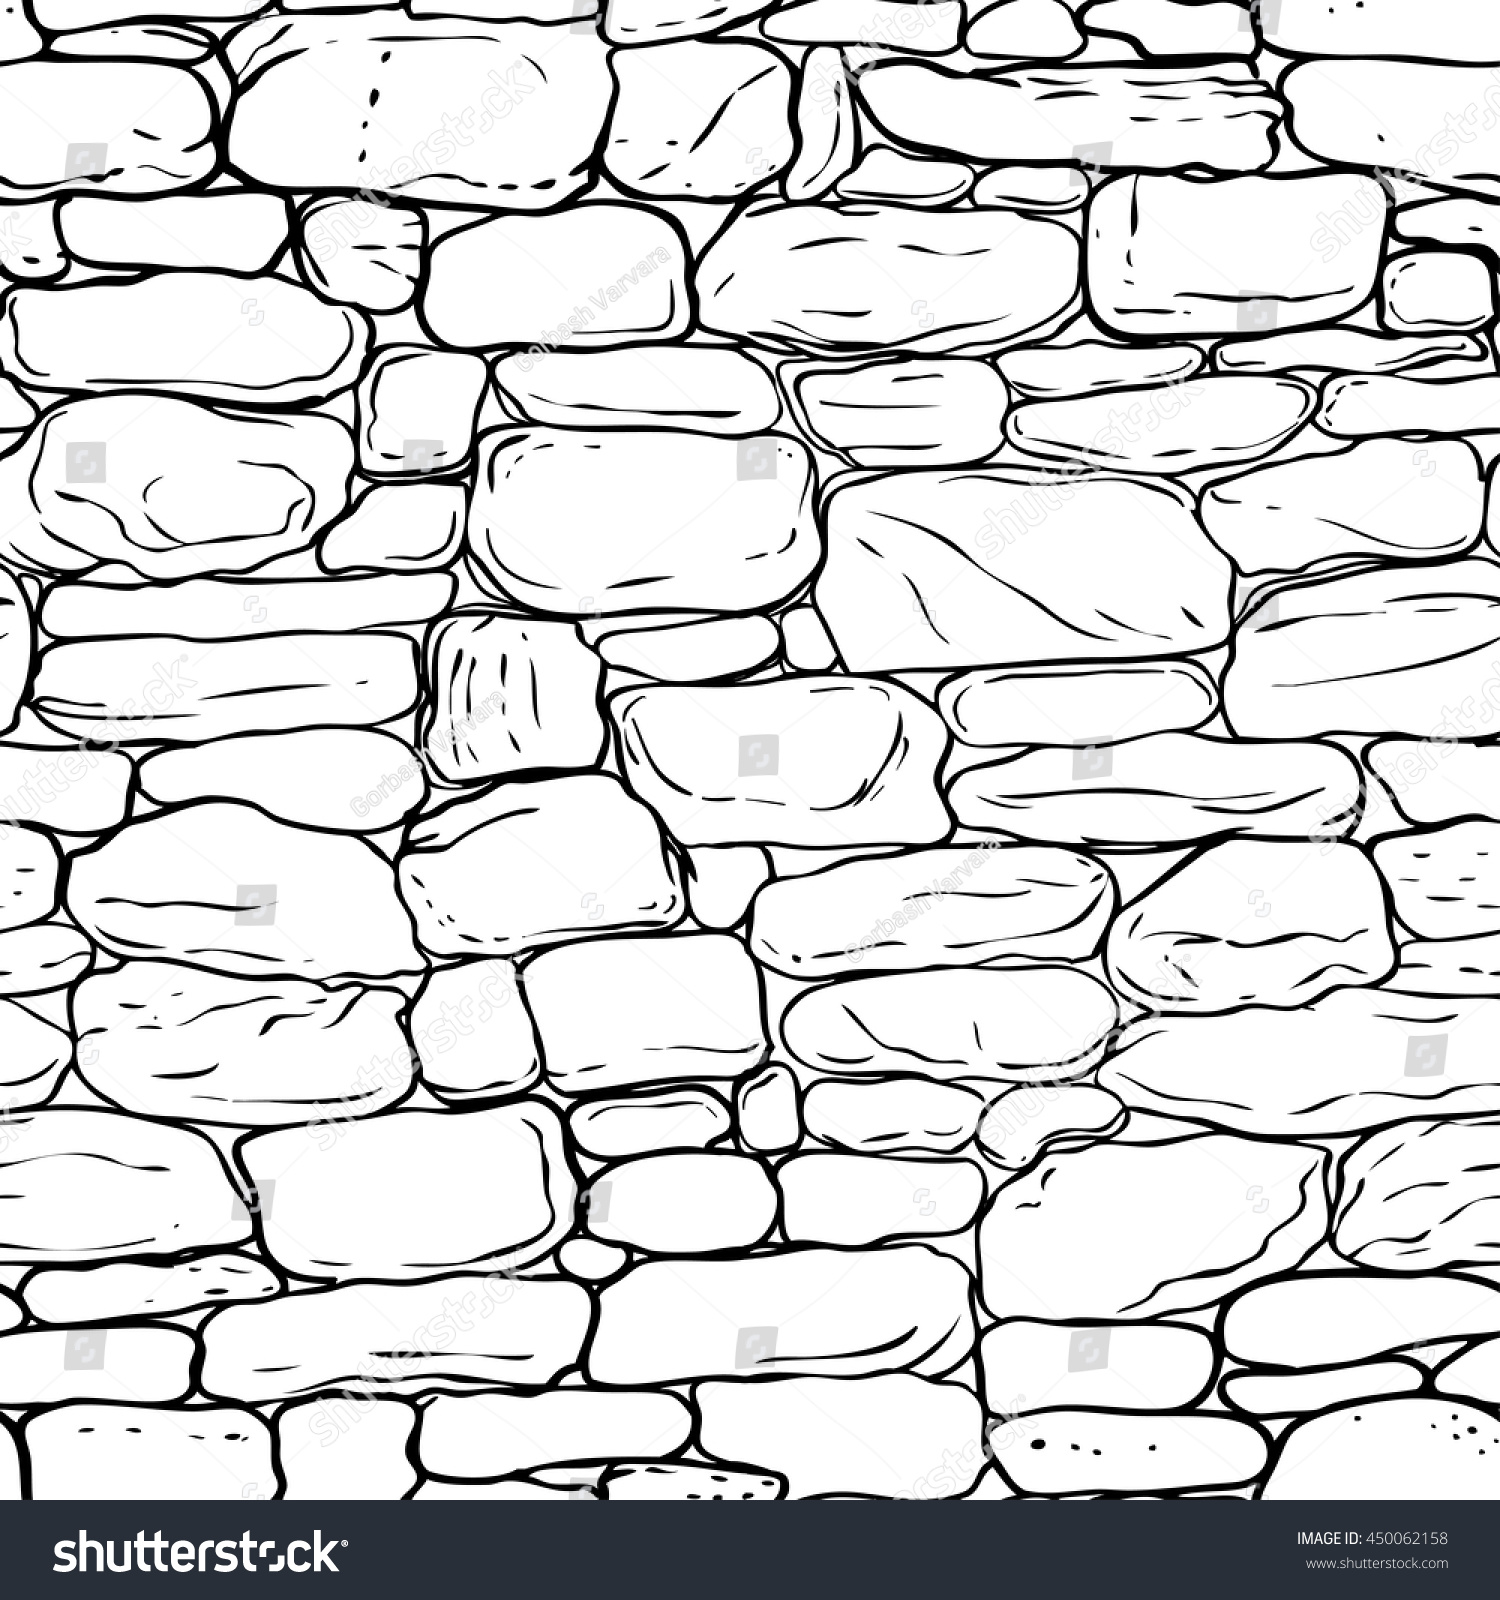 Brick Vector Picture Brick Veneers: Vector Handdrawn Texture Brick Wall Sett Stock Vector